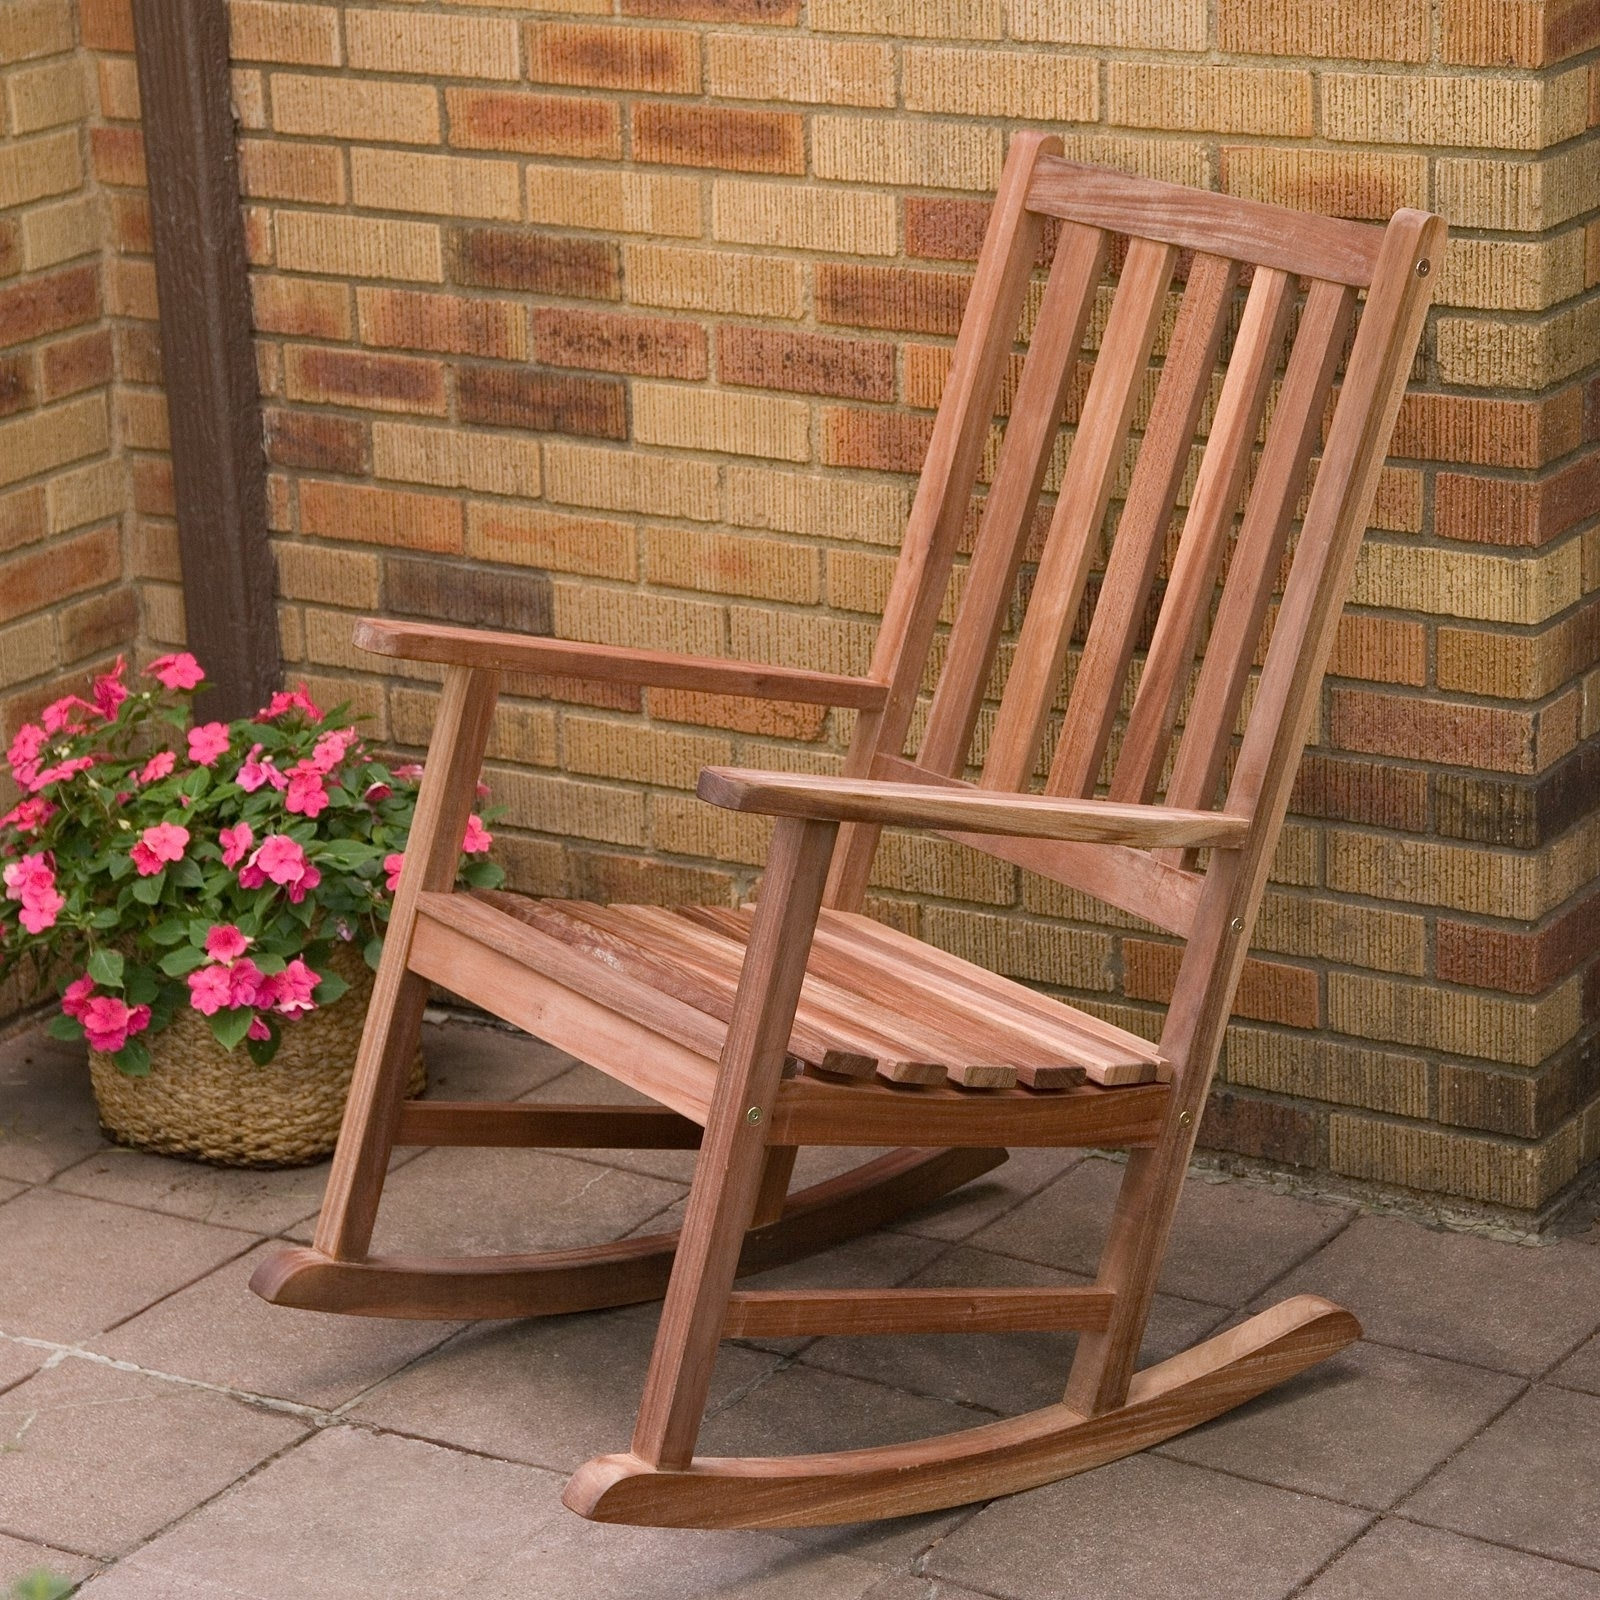 Fashionable Patio & Garden : Rocking Chairs For Outdoors Amazing Amazon Merry For Vintage Outdoor Rocking Chairs (View 5 of 20)